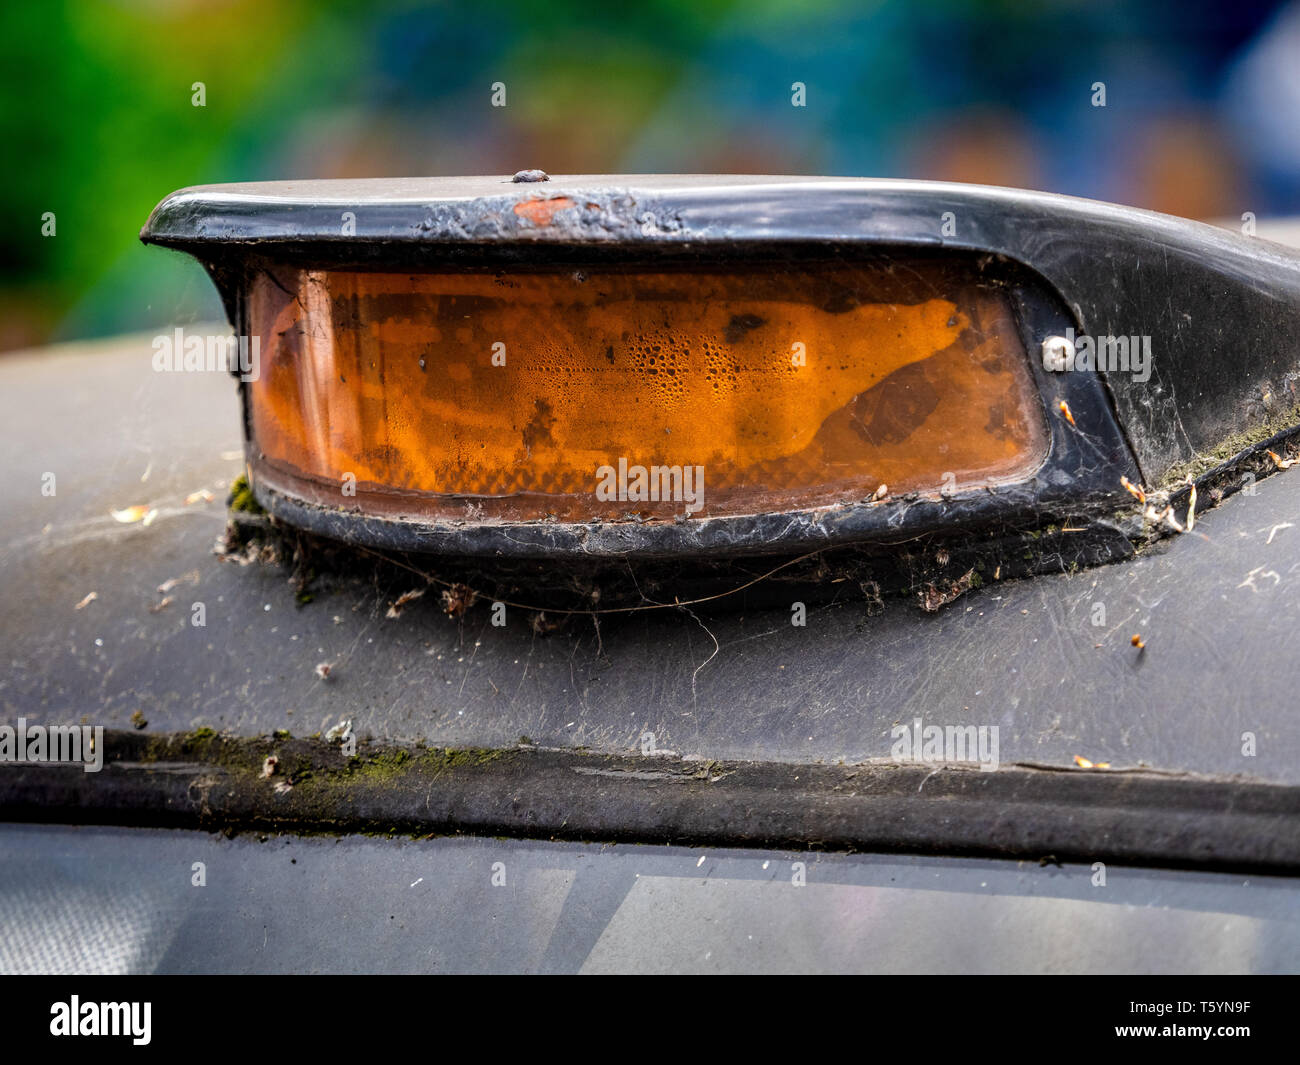 Derelict Taxi - Decrepit London Taxi Sign, Old London Black Cab. - Stock Image